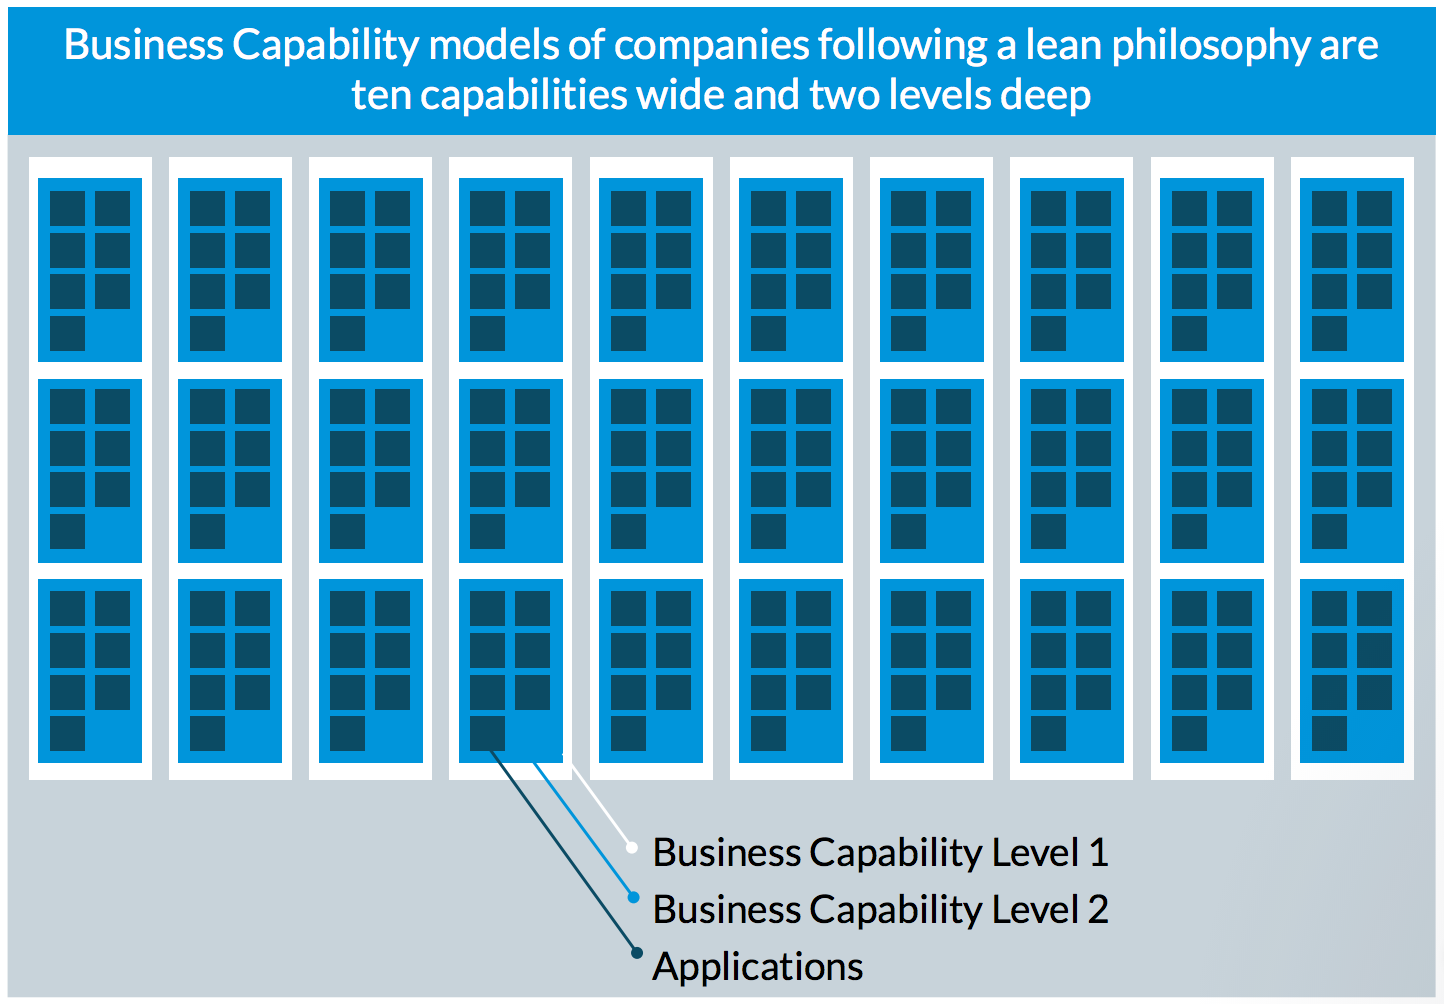 Breathe Life Into Your Business Capability Model: Show It at Every Opportunity.